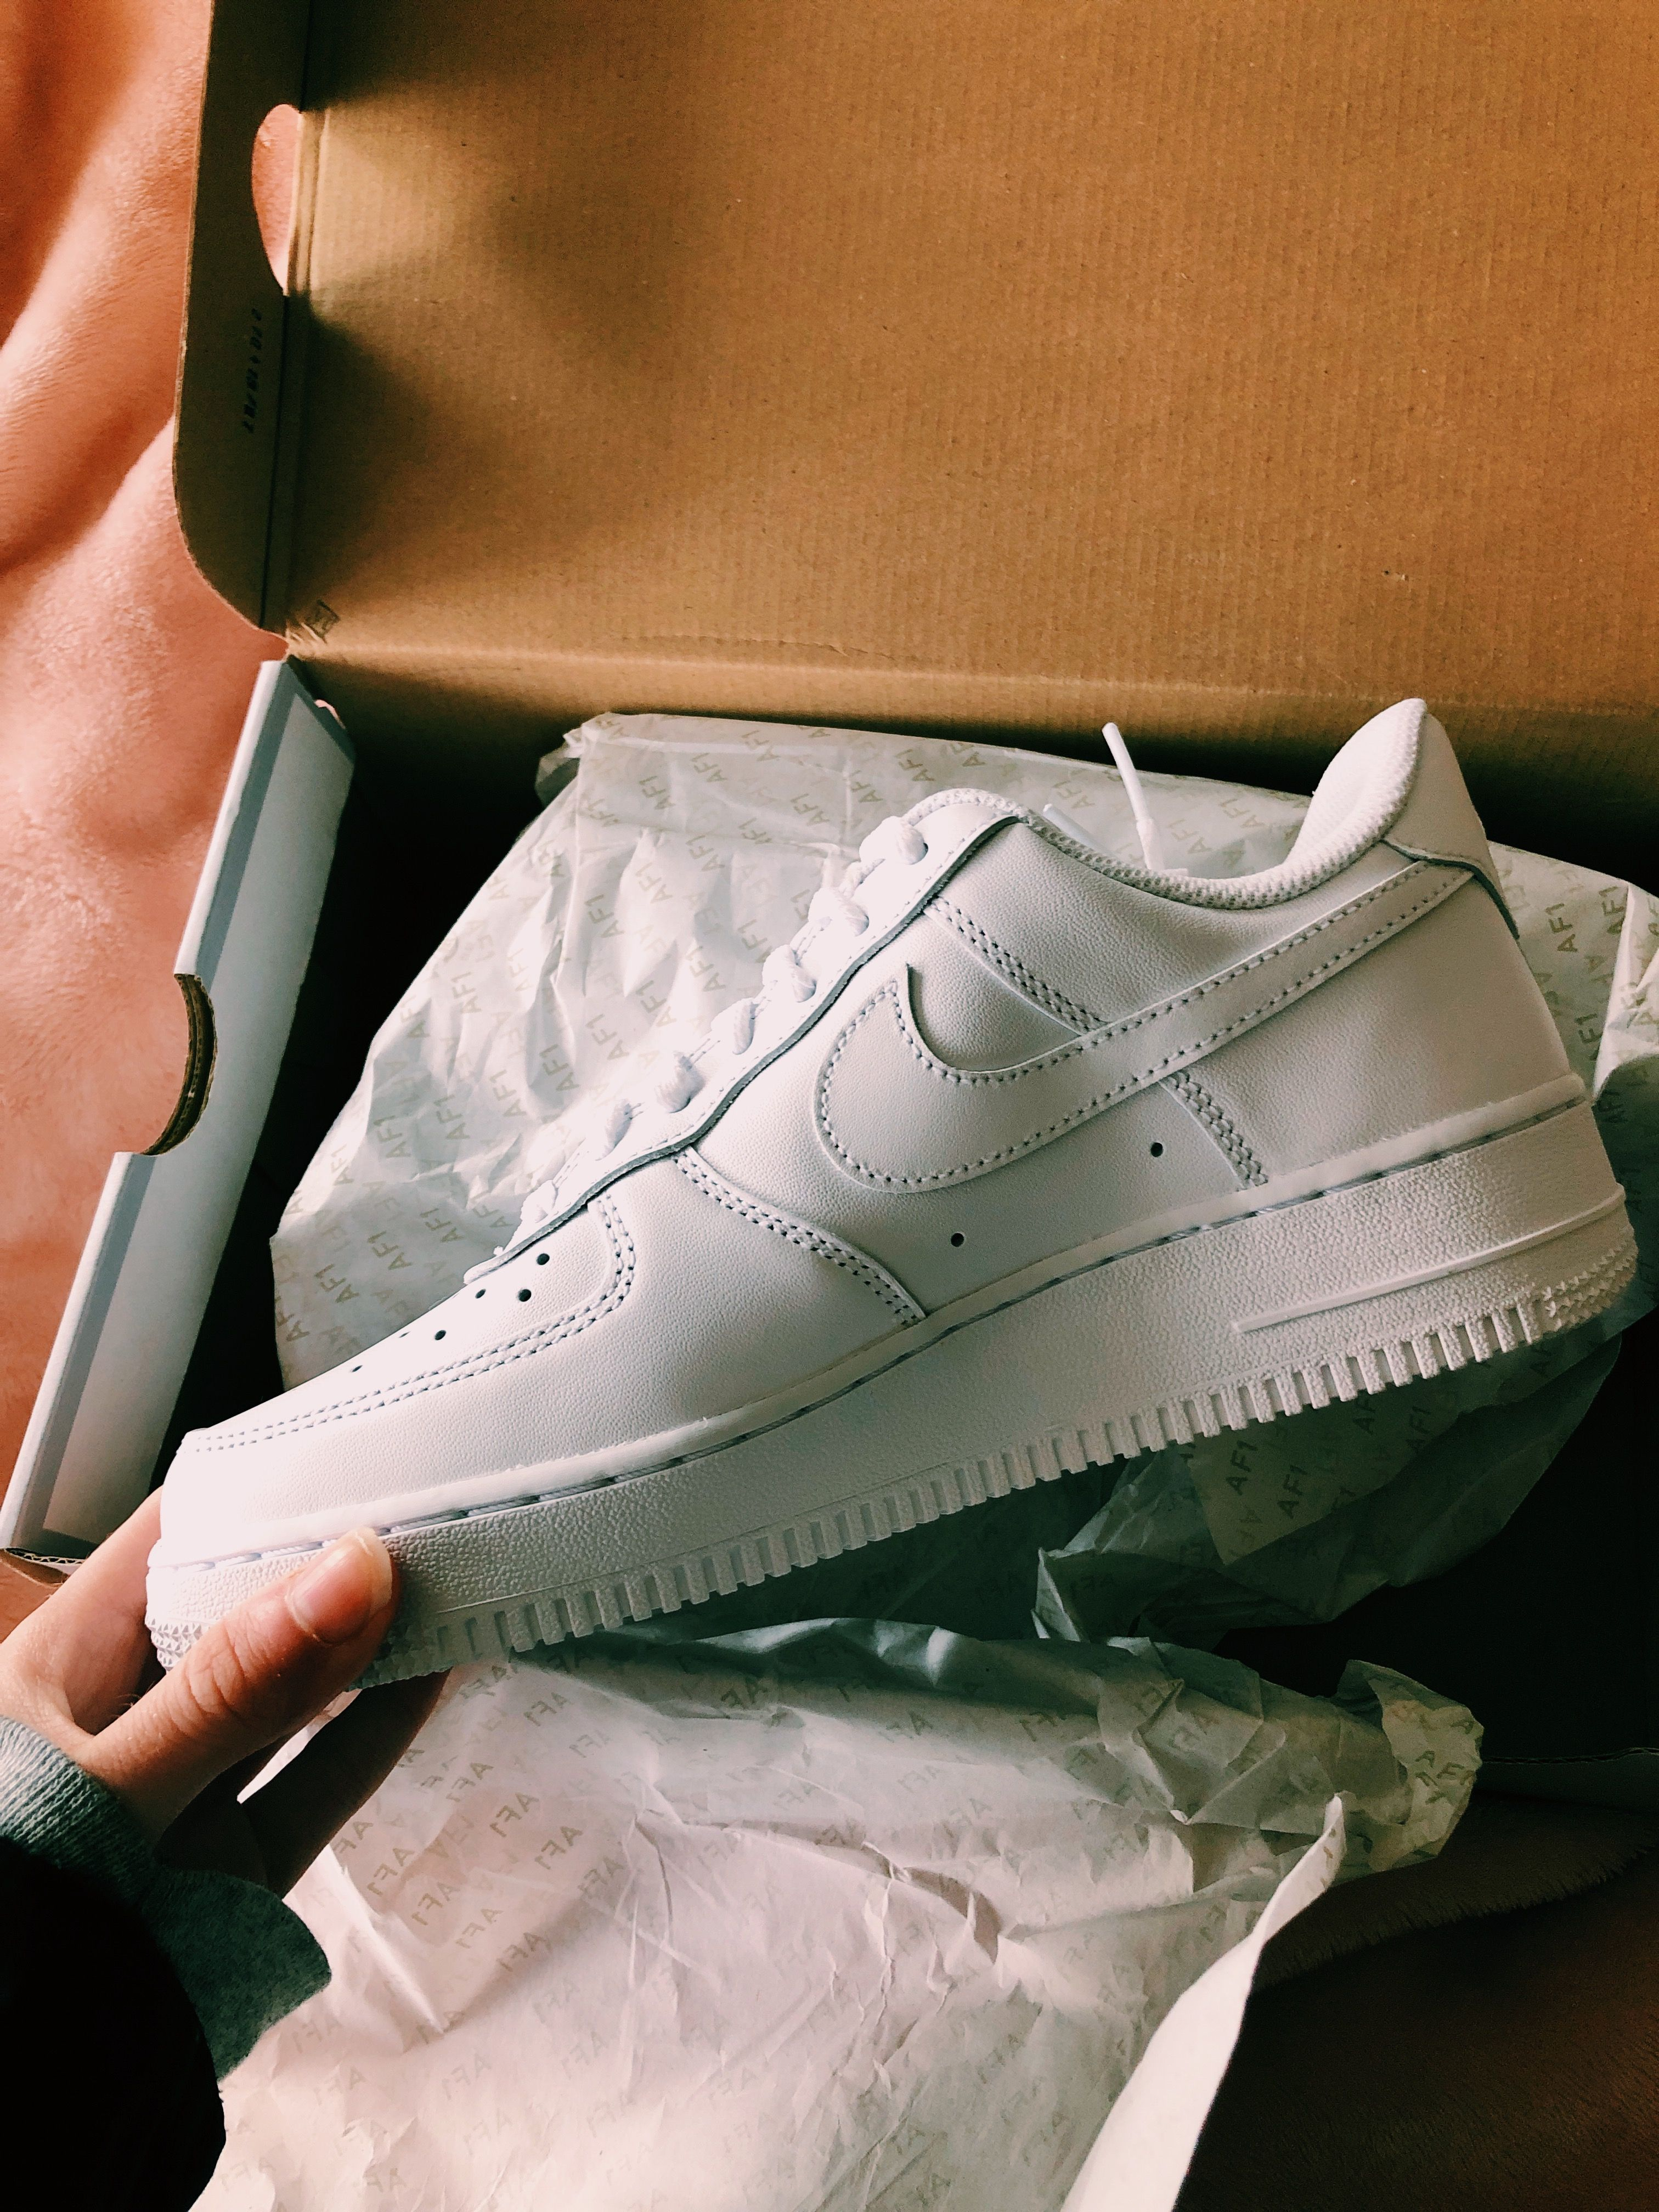 new style 22766 55dba Nike Air Force ones, Nike Air Force 1, AF1, just do it, sneakers, white  sneakers, kicks, trainers, new sneakers, shoes, Nike, ootd, vsco, instagram